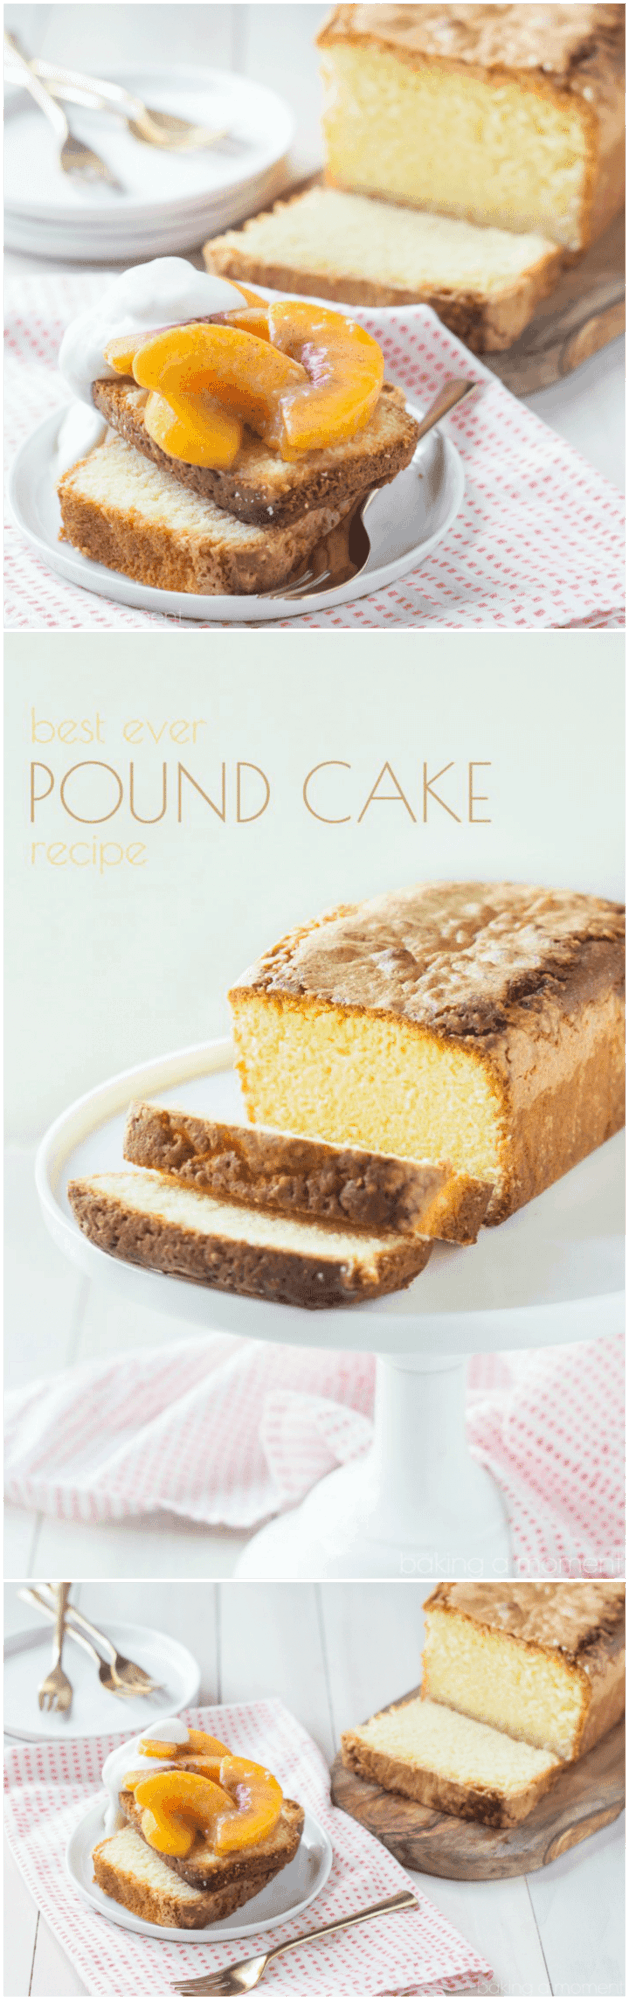 Best Pound Cake Recipe I've ever tried!  There's no chemical leaveners so all you taste is the butter and eggs.  Those gingered brown butter peaches take it totally over the top!